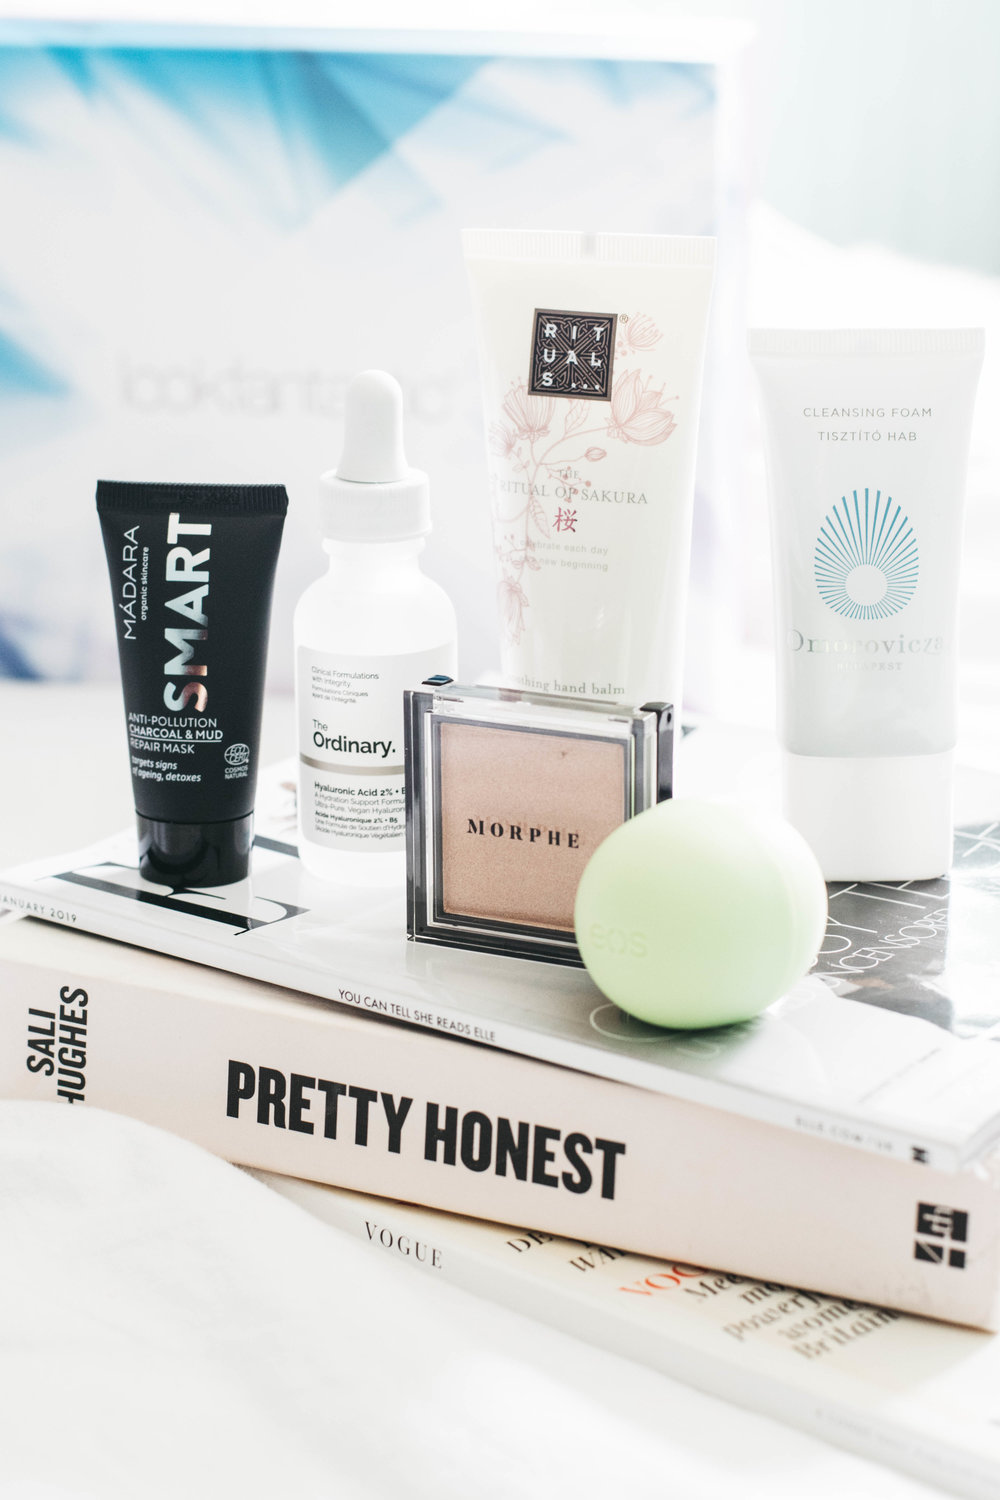 lookfantastic march 2019 beauty box review